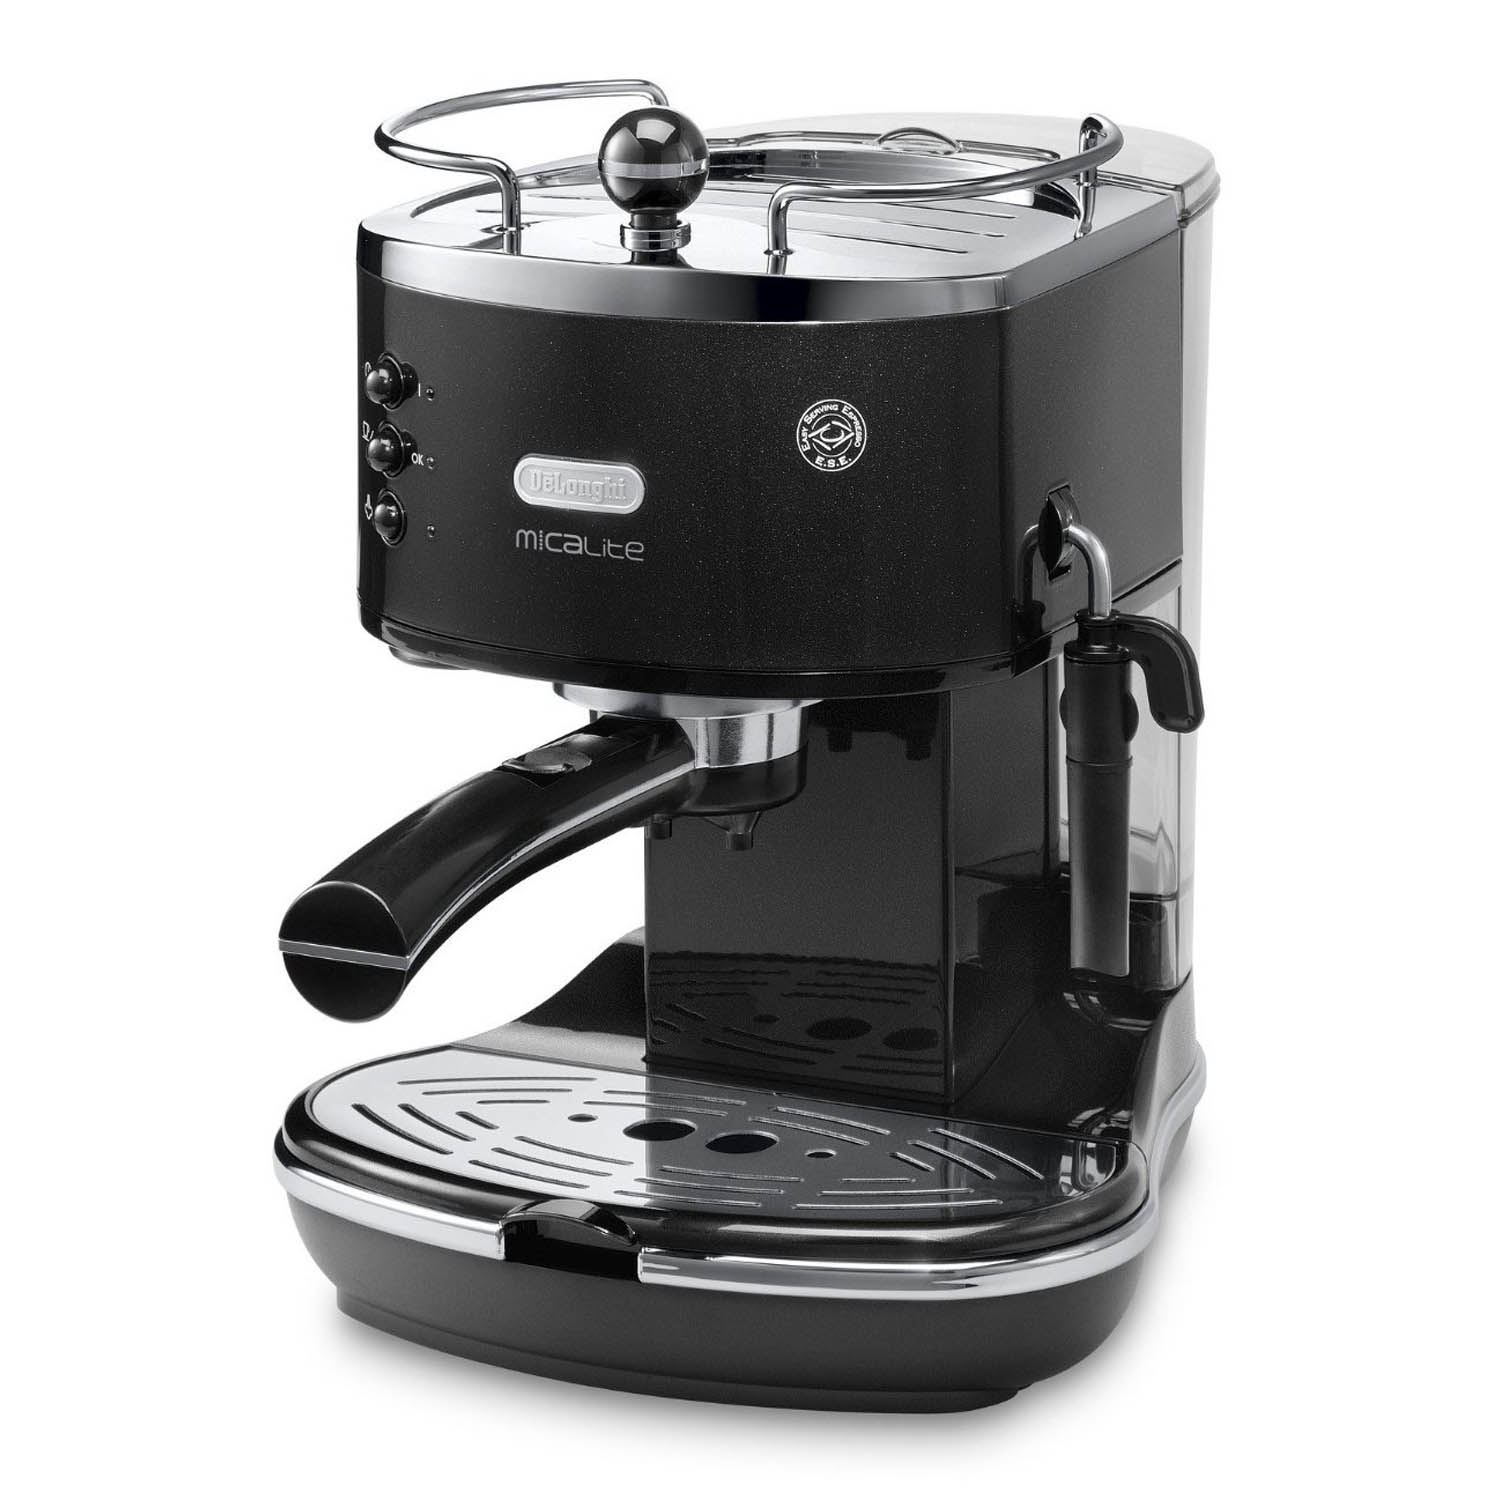 Delonghi ecom310 icona micalite 2 cup espresso filter New coffee machine